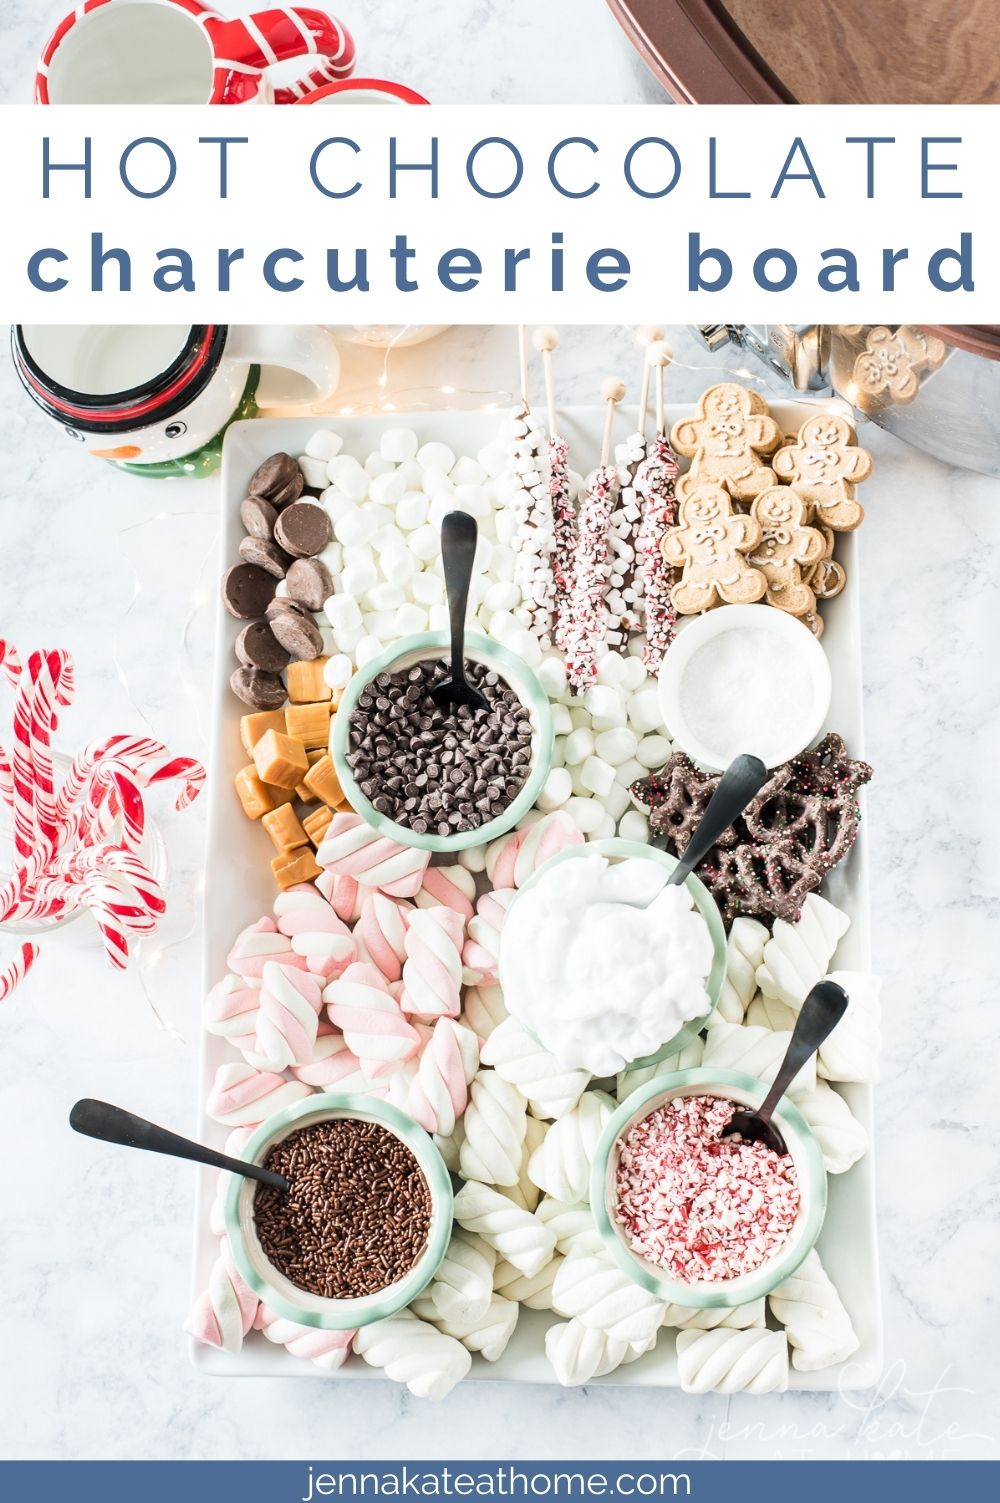 Hot Chocolate Fixins Dessert Charcuterie Board Jenna Kate At Home